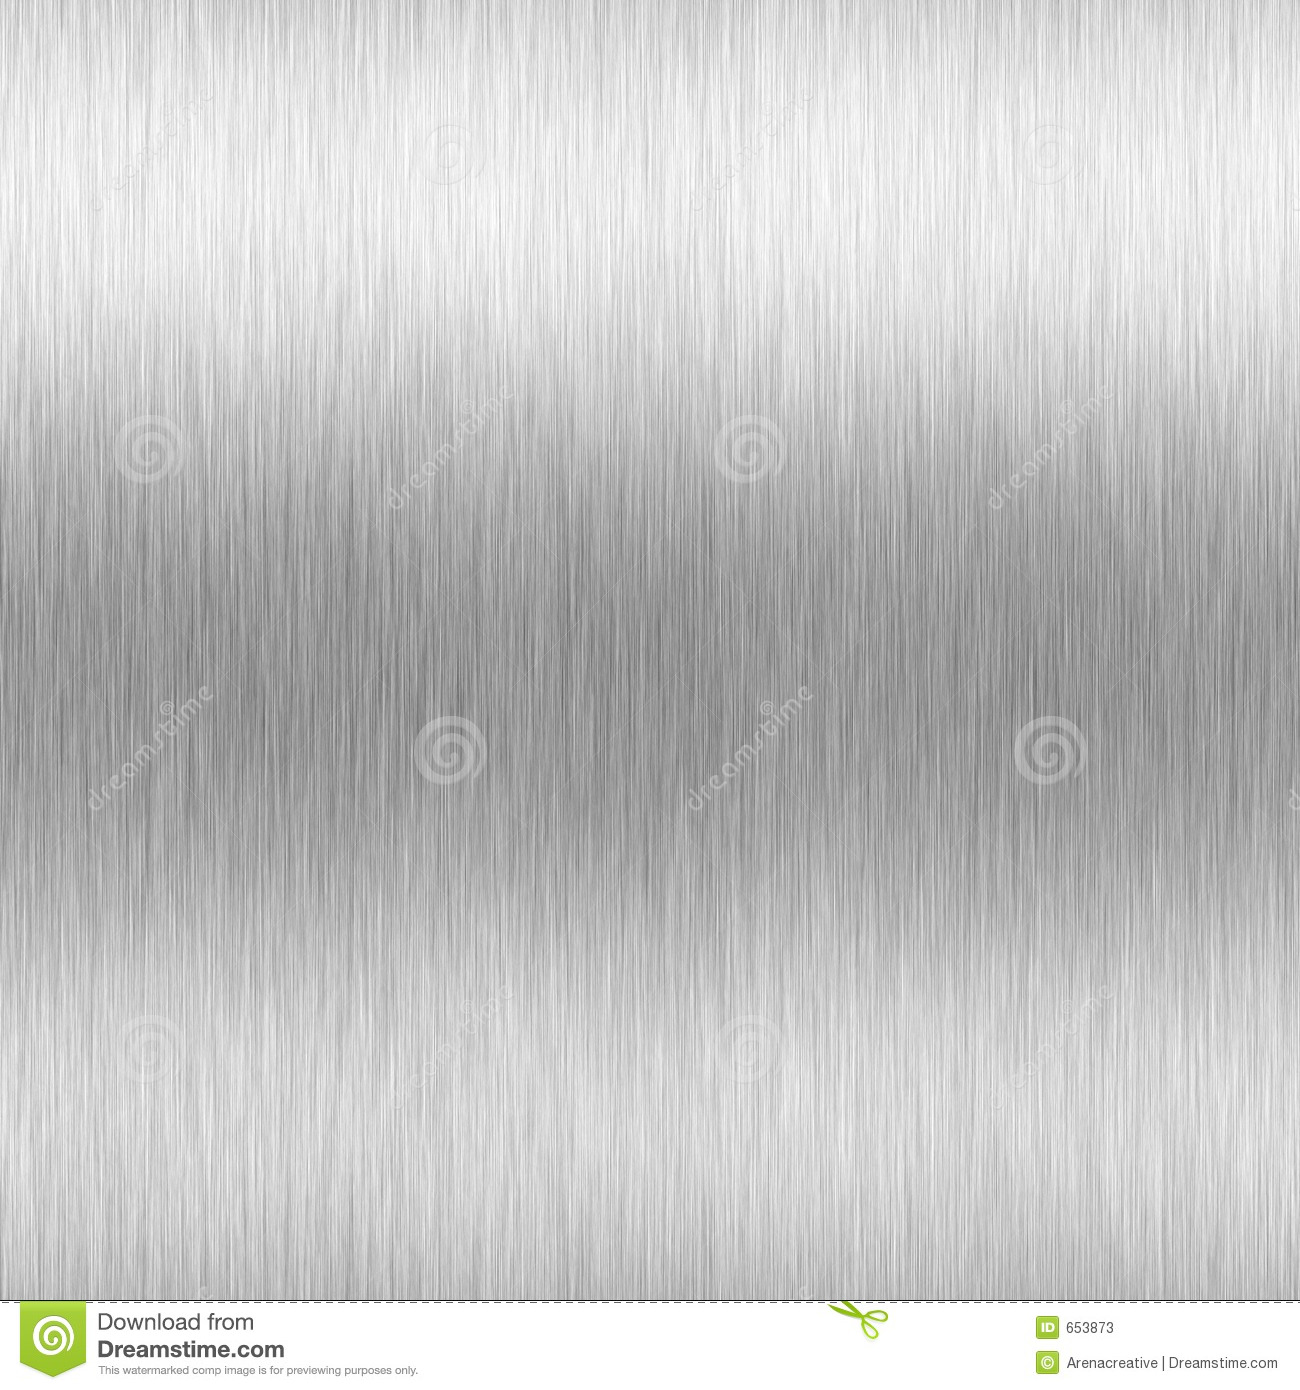 Download High-Contrast Brushed Aluminum Stock Illustration - Illustration of reflections, aluminum: 653873